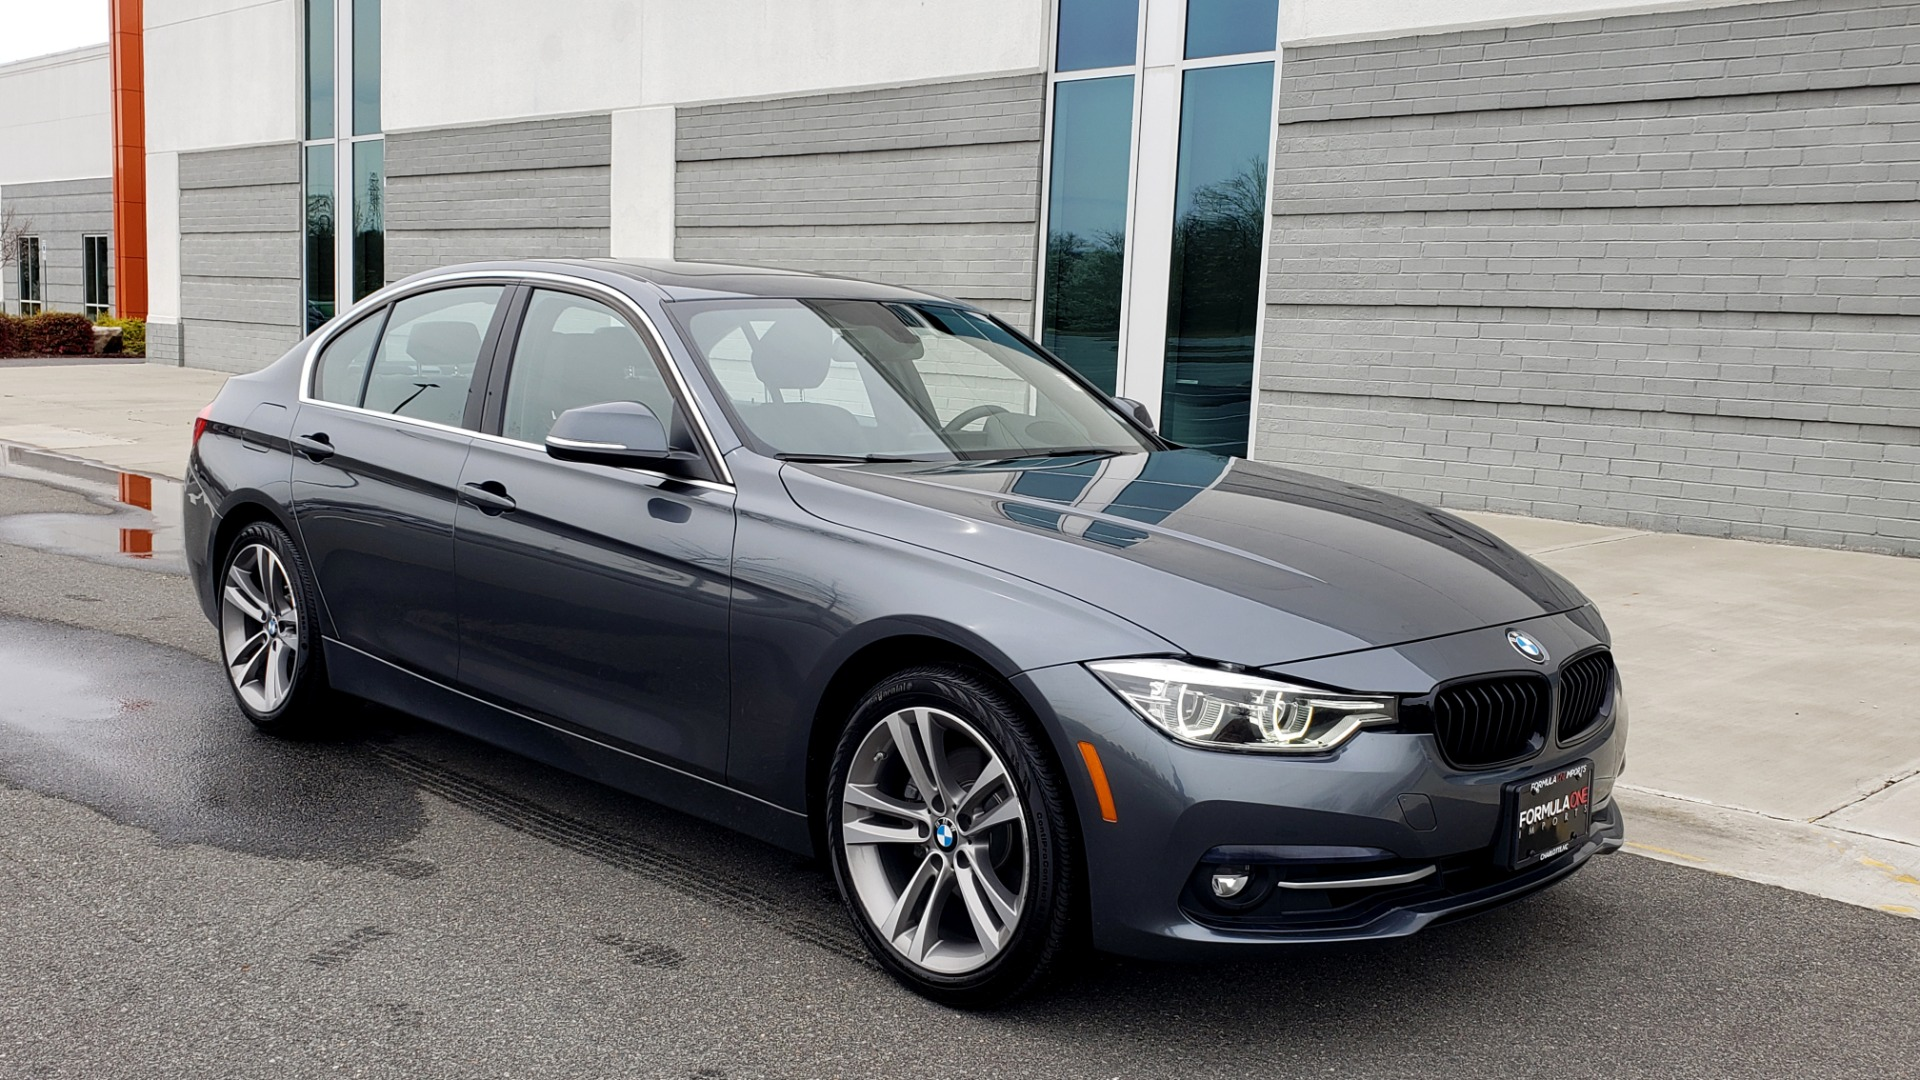 Used 2018 BMW 3 SERIES 330I XDRIVE PREMIUM / CONV PKG NAV / BLIND SPOT / HTD STS / REARVIEW for sale $22,695 at Formula Imports in Charlotte NC 28227 2